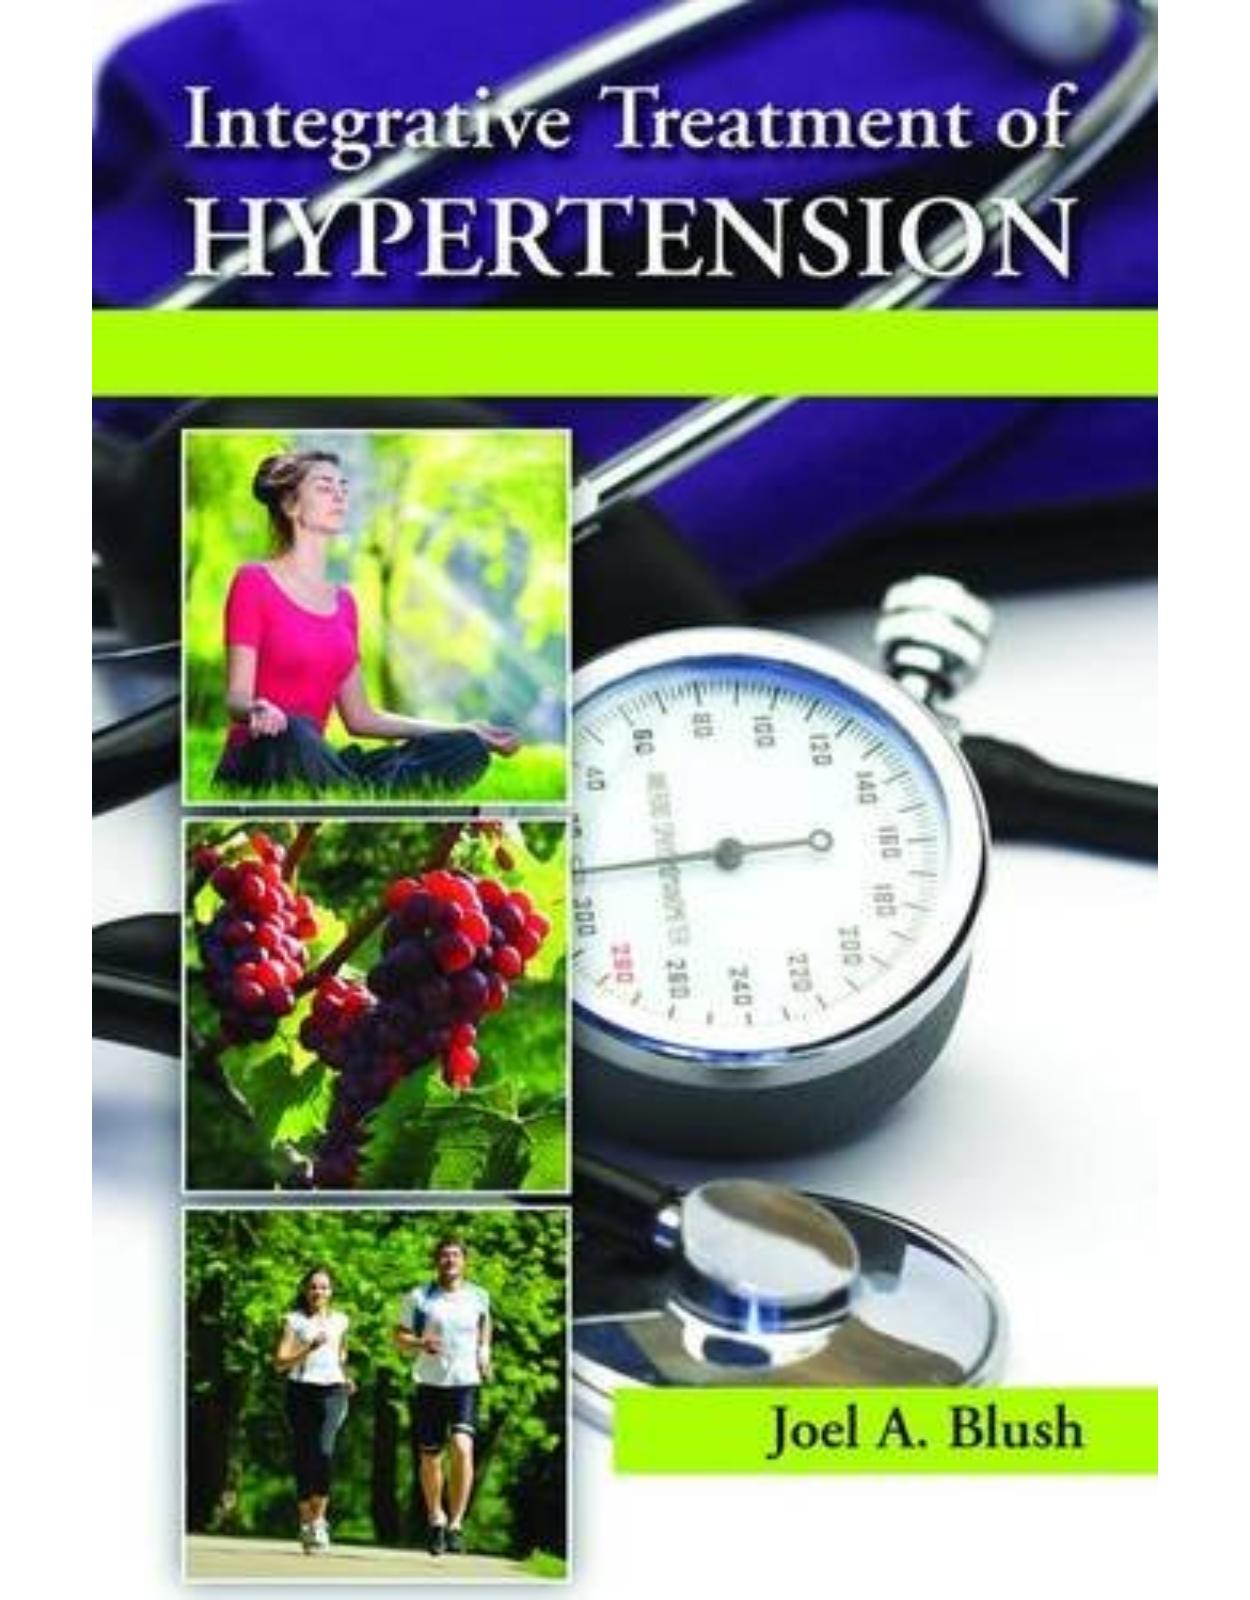 Integrative Treatment of Hypertension: A Clinical and Mechanistic Approach